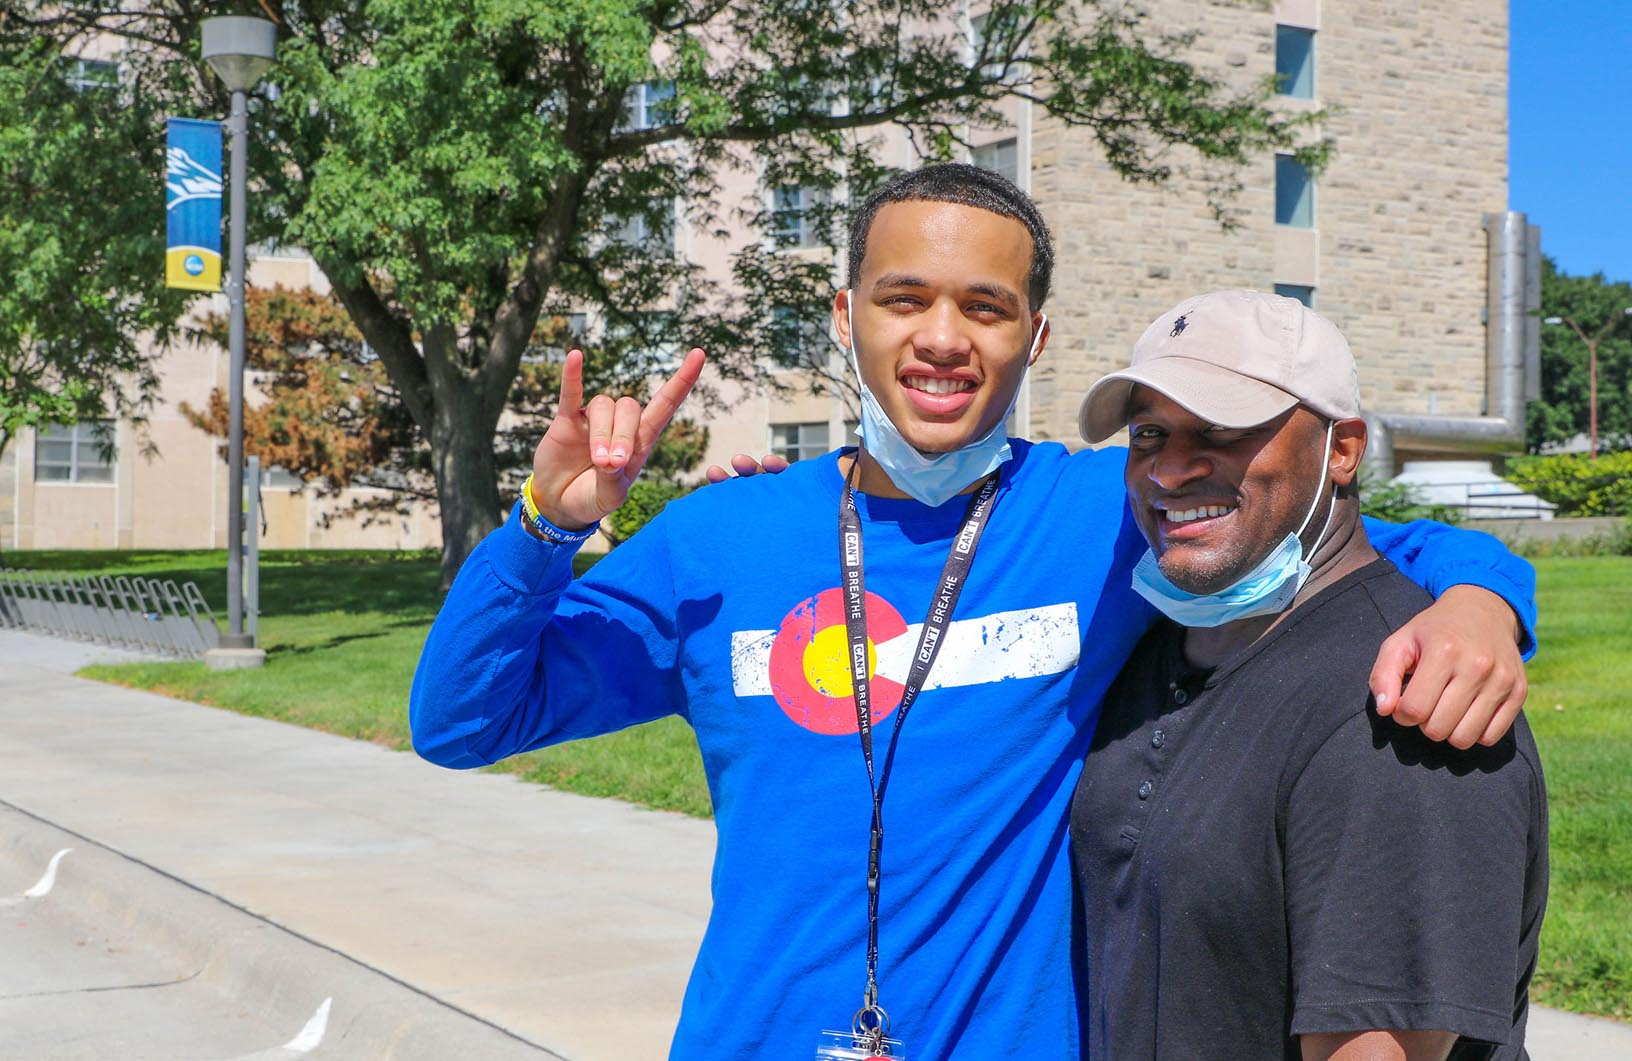 Freshman Matthew Robinson of Colorado Springs, Colorado, left, poses for a photo with his father Michael on the UNK campus. Robinson, who will study business administration, is attending UNK on a football scholarship.